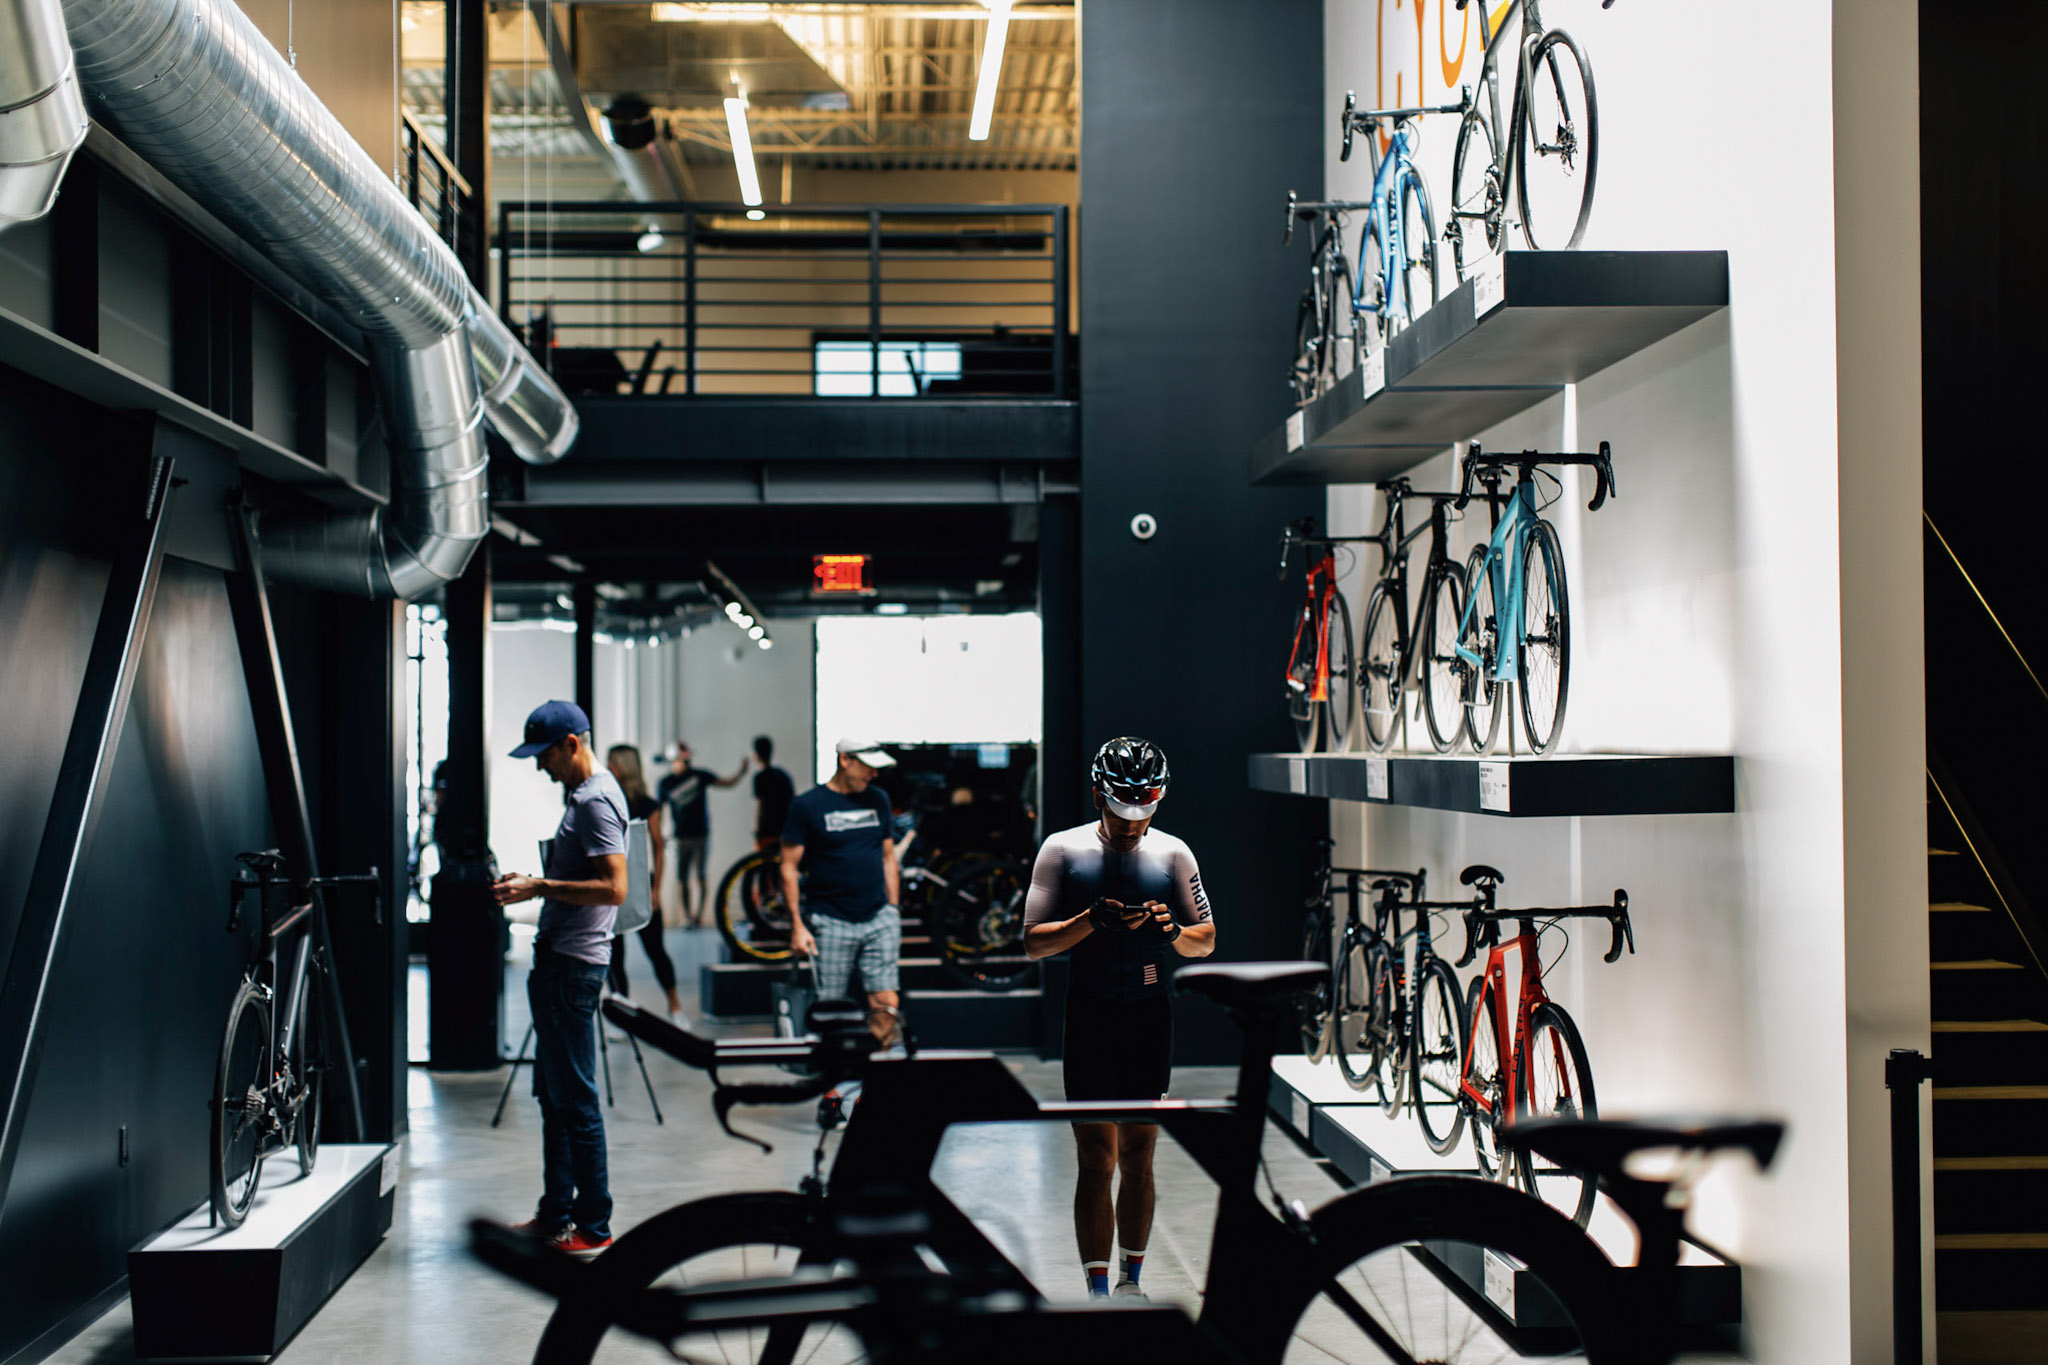 The Canyon US Showroom is one of only 2 in the world where riders enjoyed browsing the German engineered bicycles during the weekend's expo.